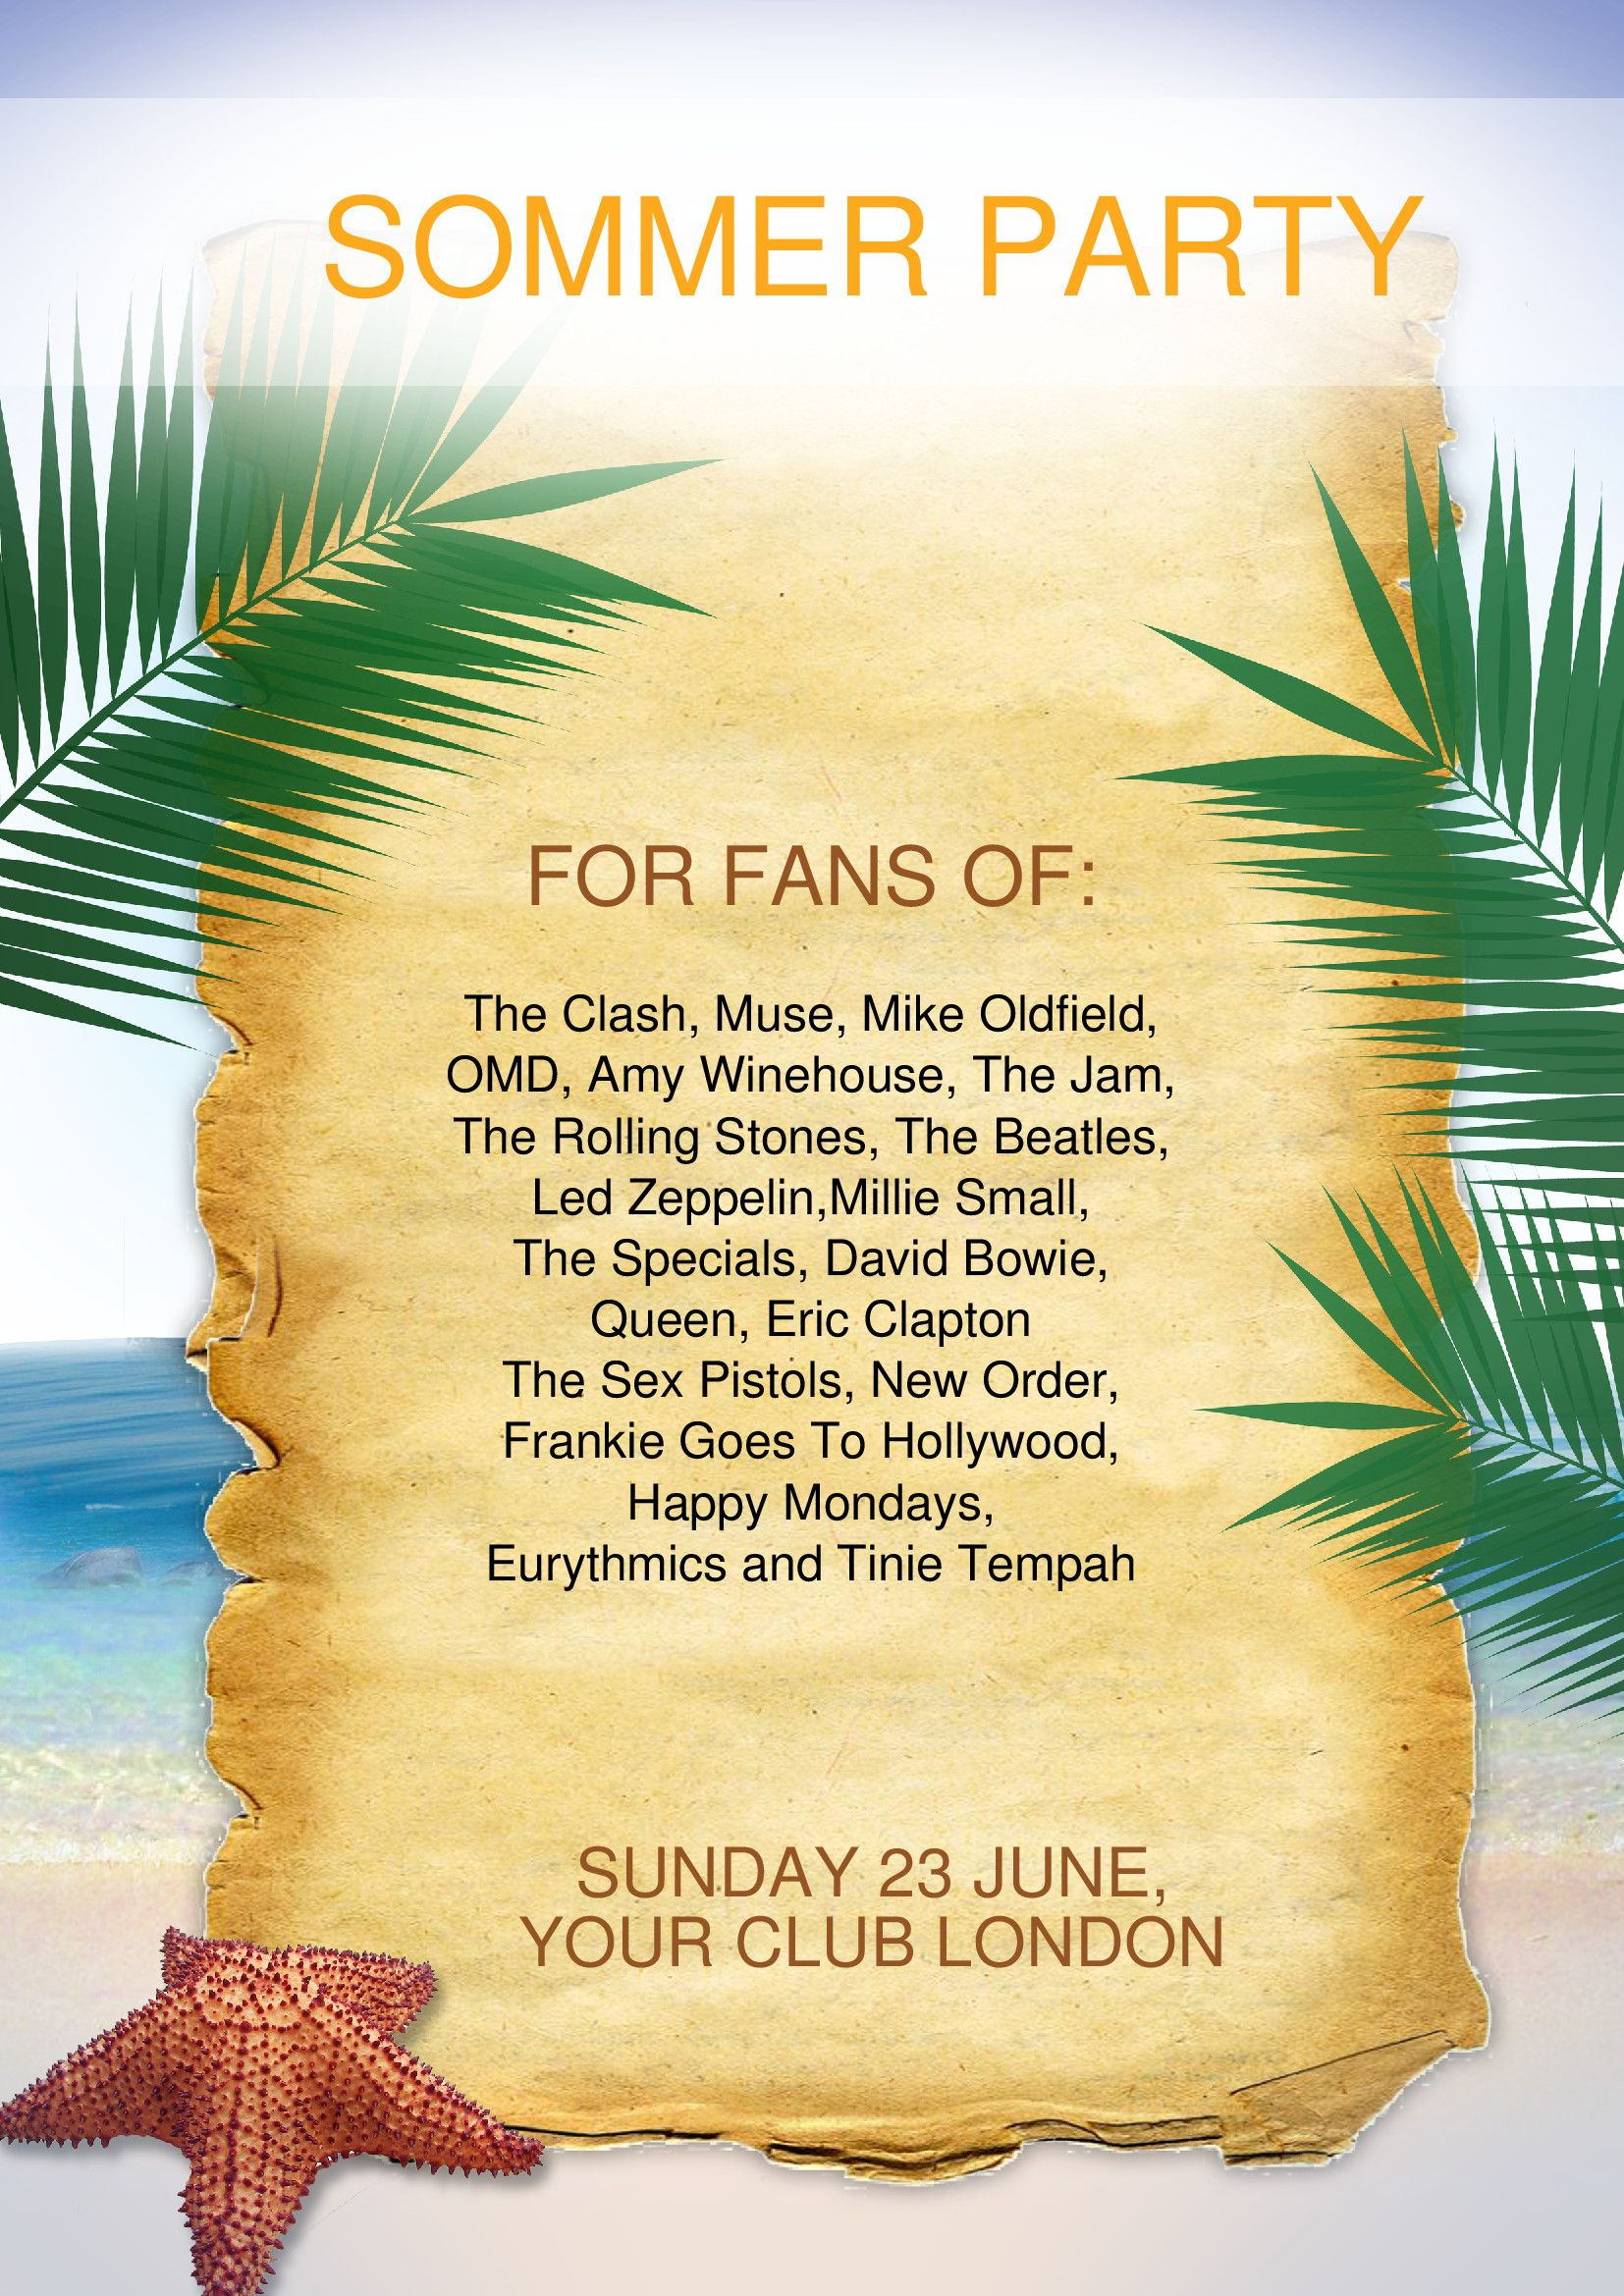 Hot Summer Party Flyer Template For A Mainstream Music Summer